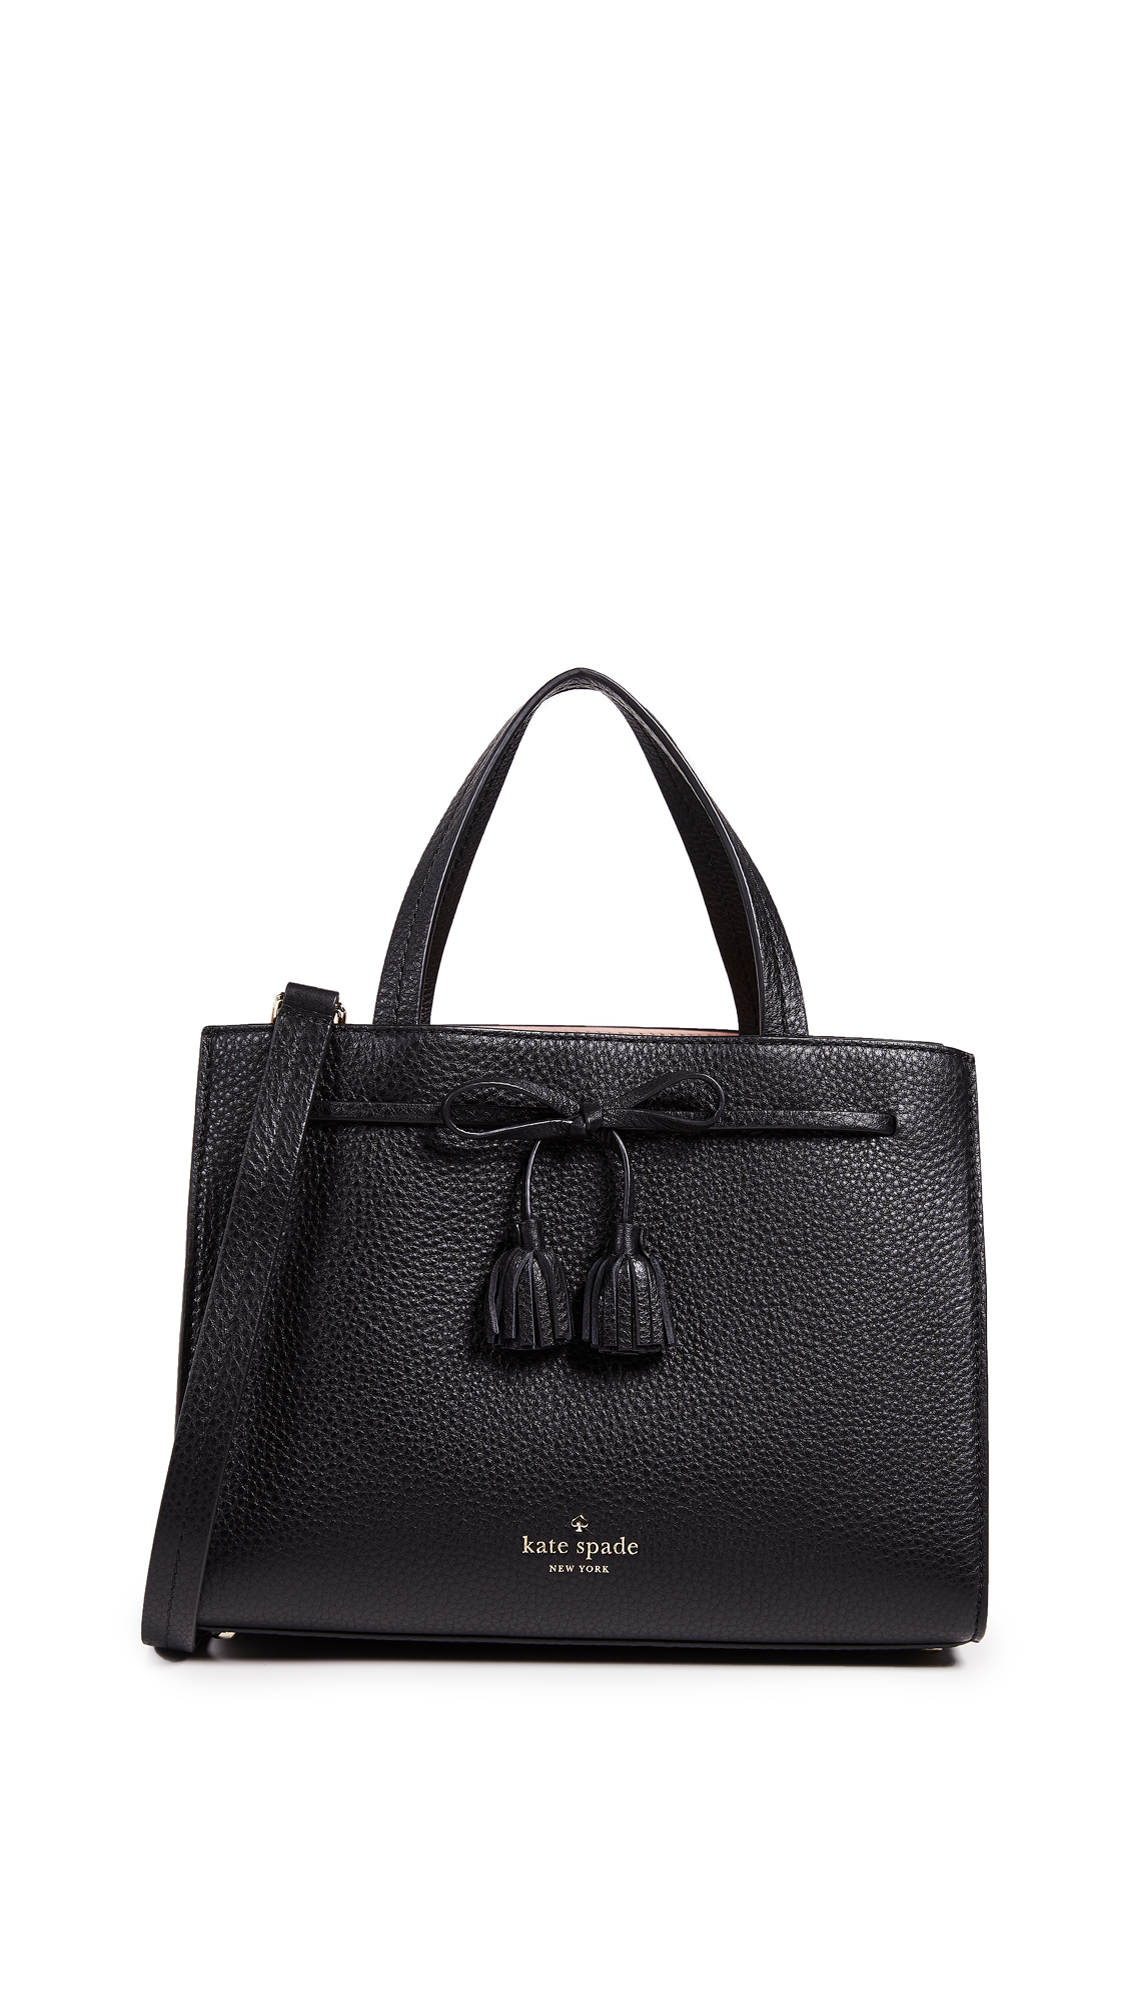 HAYES STREET SAM TOTE from Shopbop